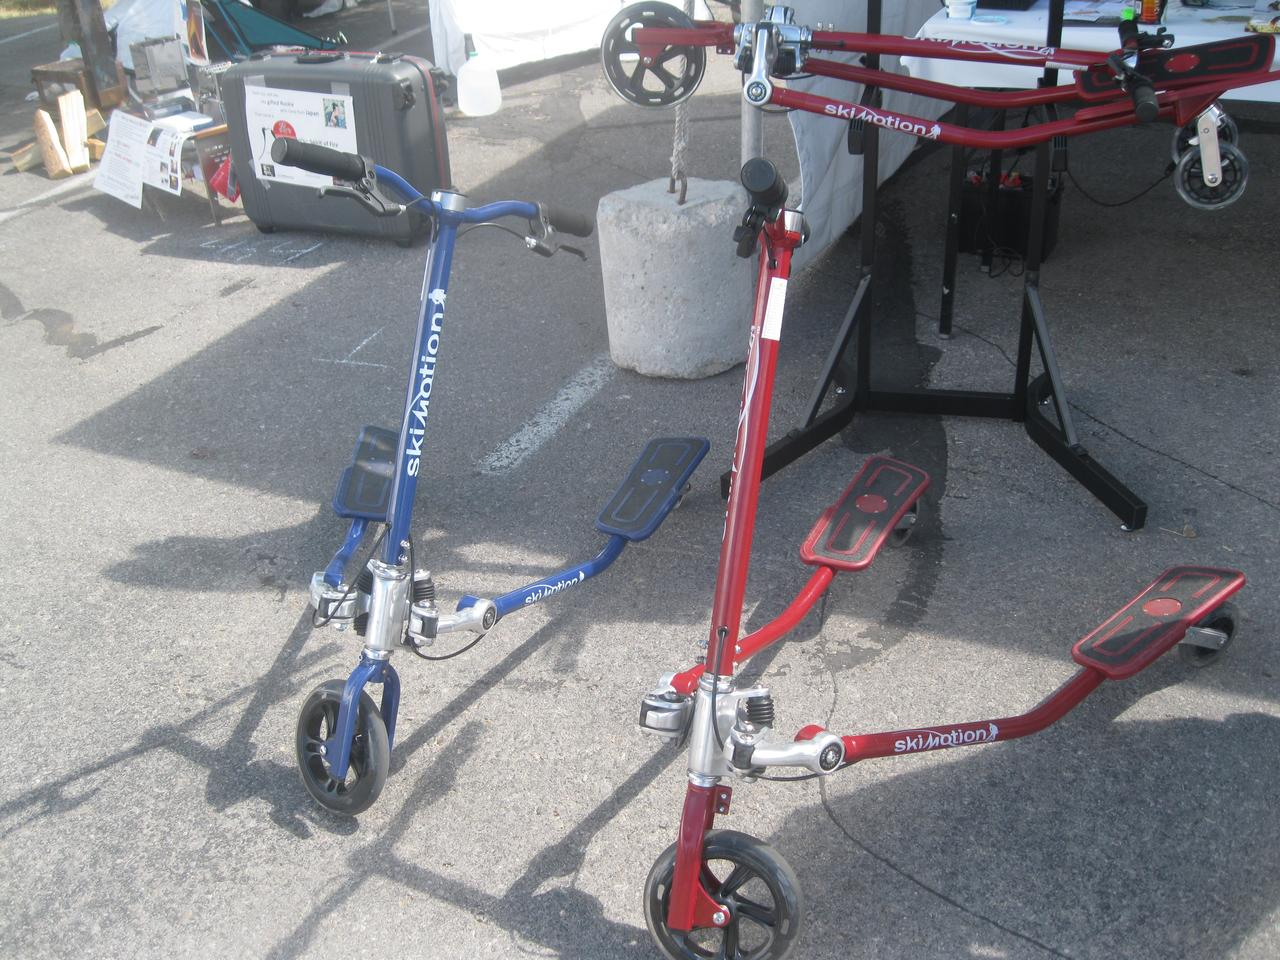 The SkiMotion comes in two sizes